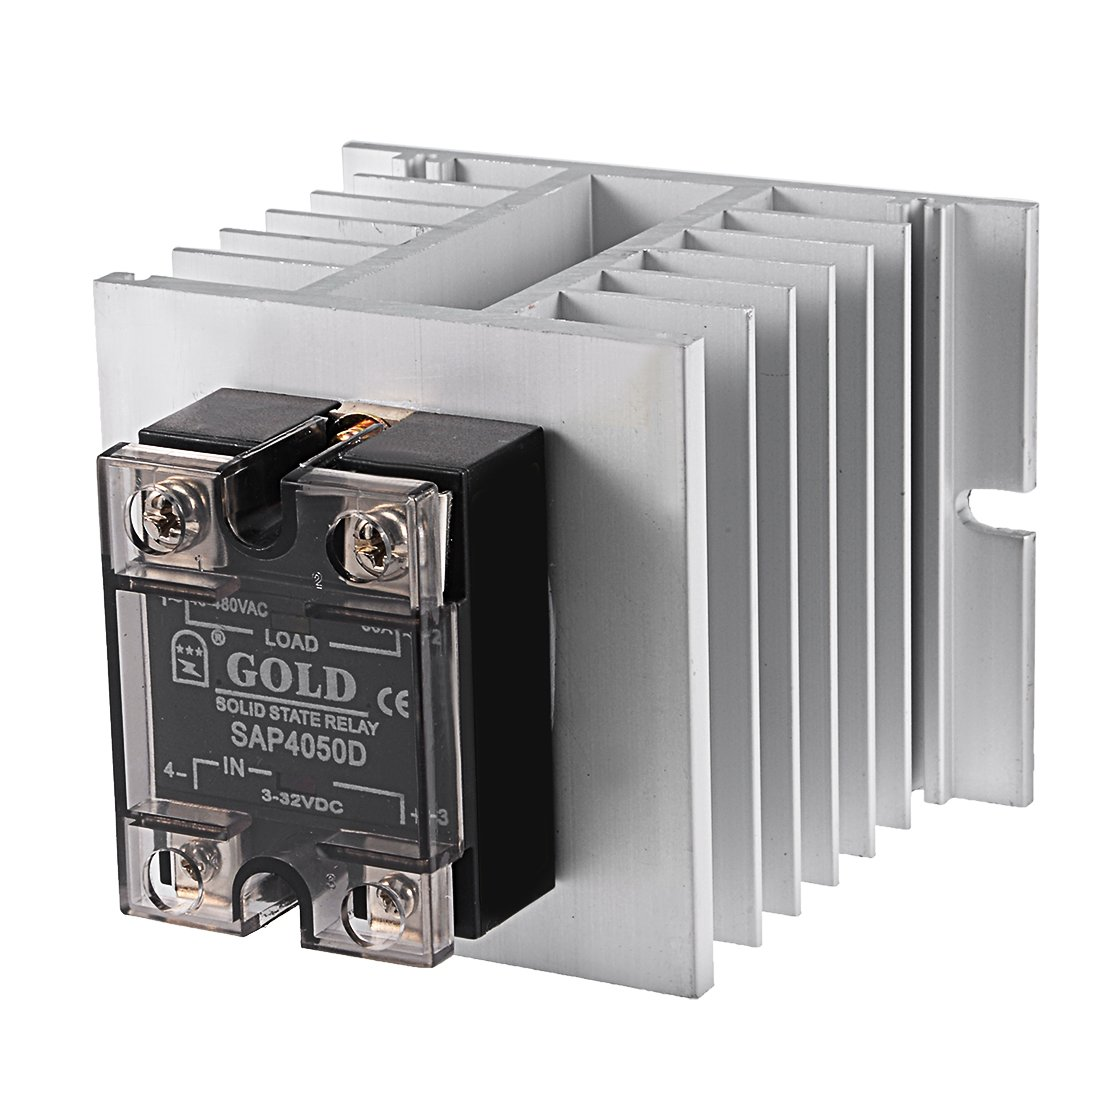 uxcell SAP4050D+G80 3-32VDC to 40-480VAC 50A Single Phase Solid State Relay Module DC to AC by uxcell